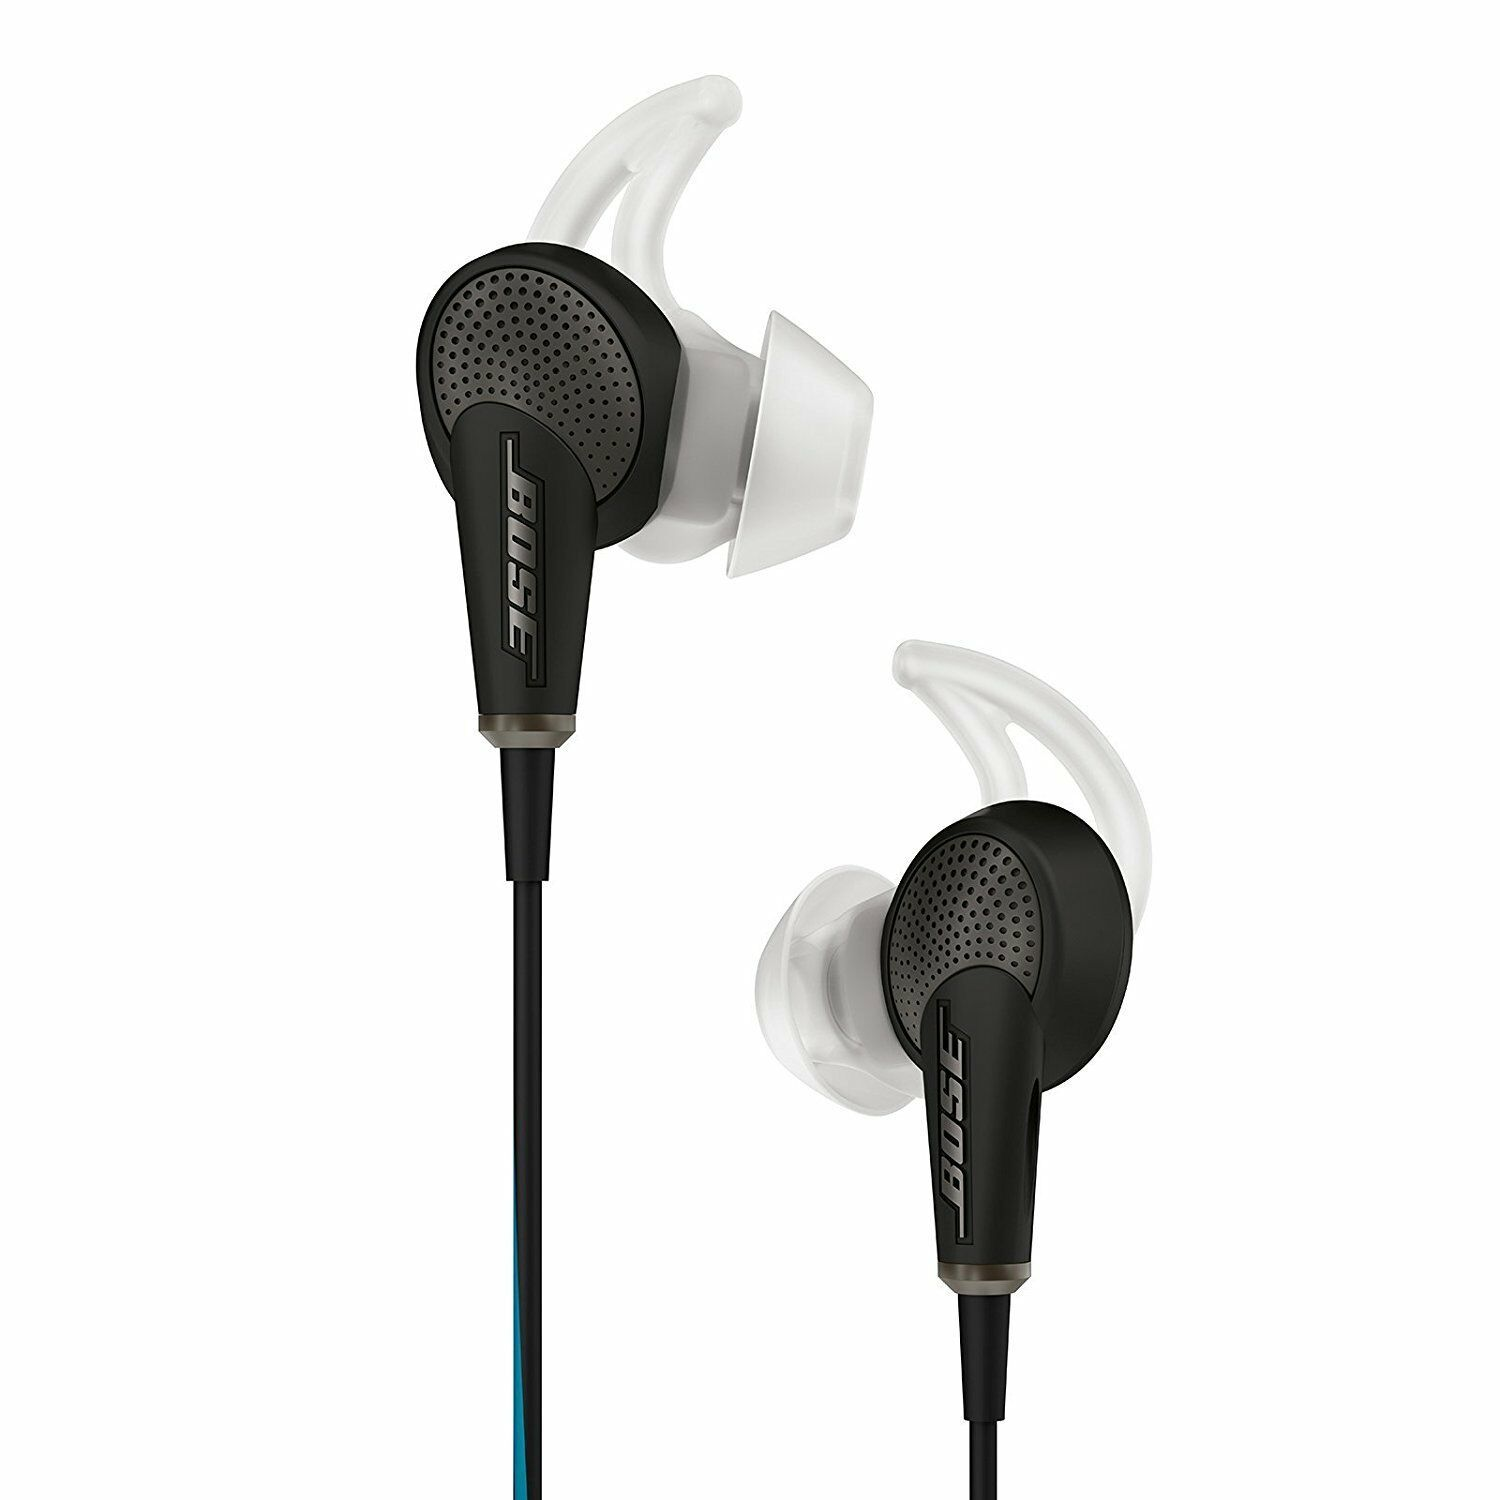 Bose Quietcomfort 20 Noise Cancelling In Ear Headphones Factory Renewed In 2020 Best Noise Cancelling Earbuds Bose Headphones Noise Cancelling Earbuds